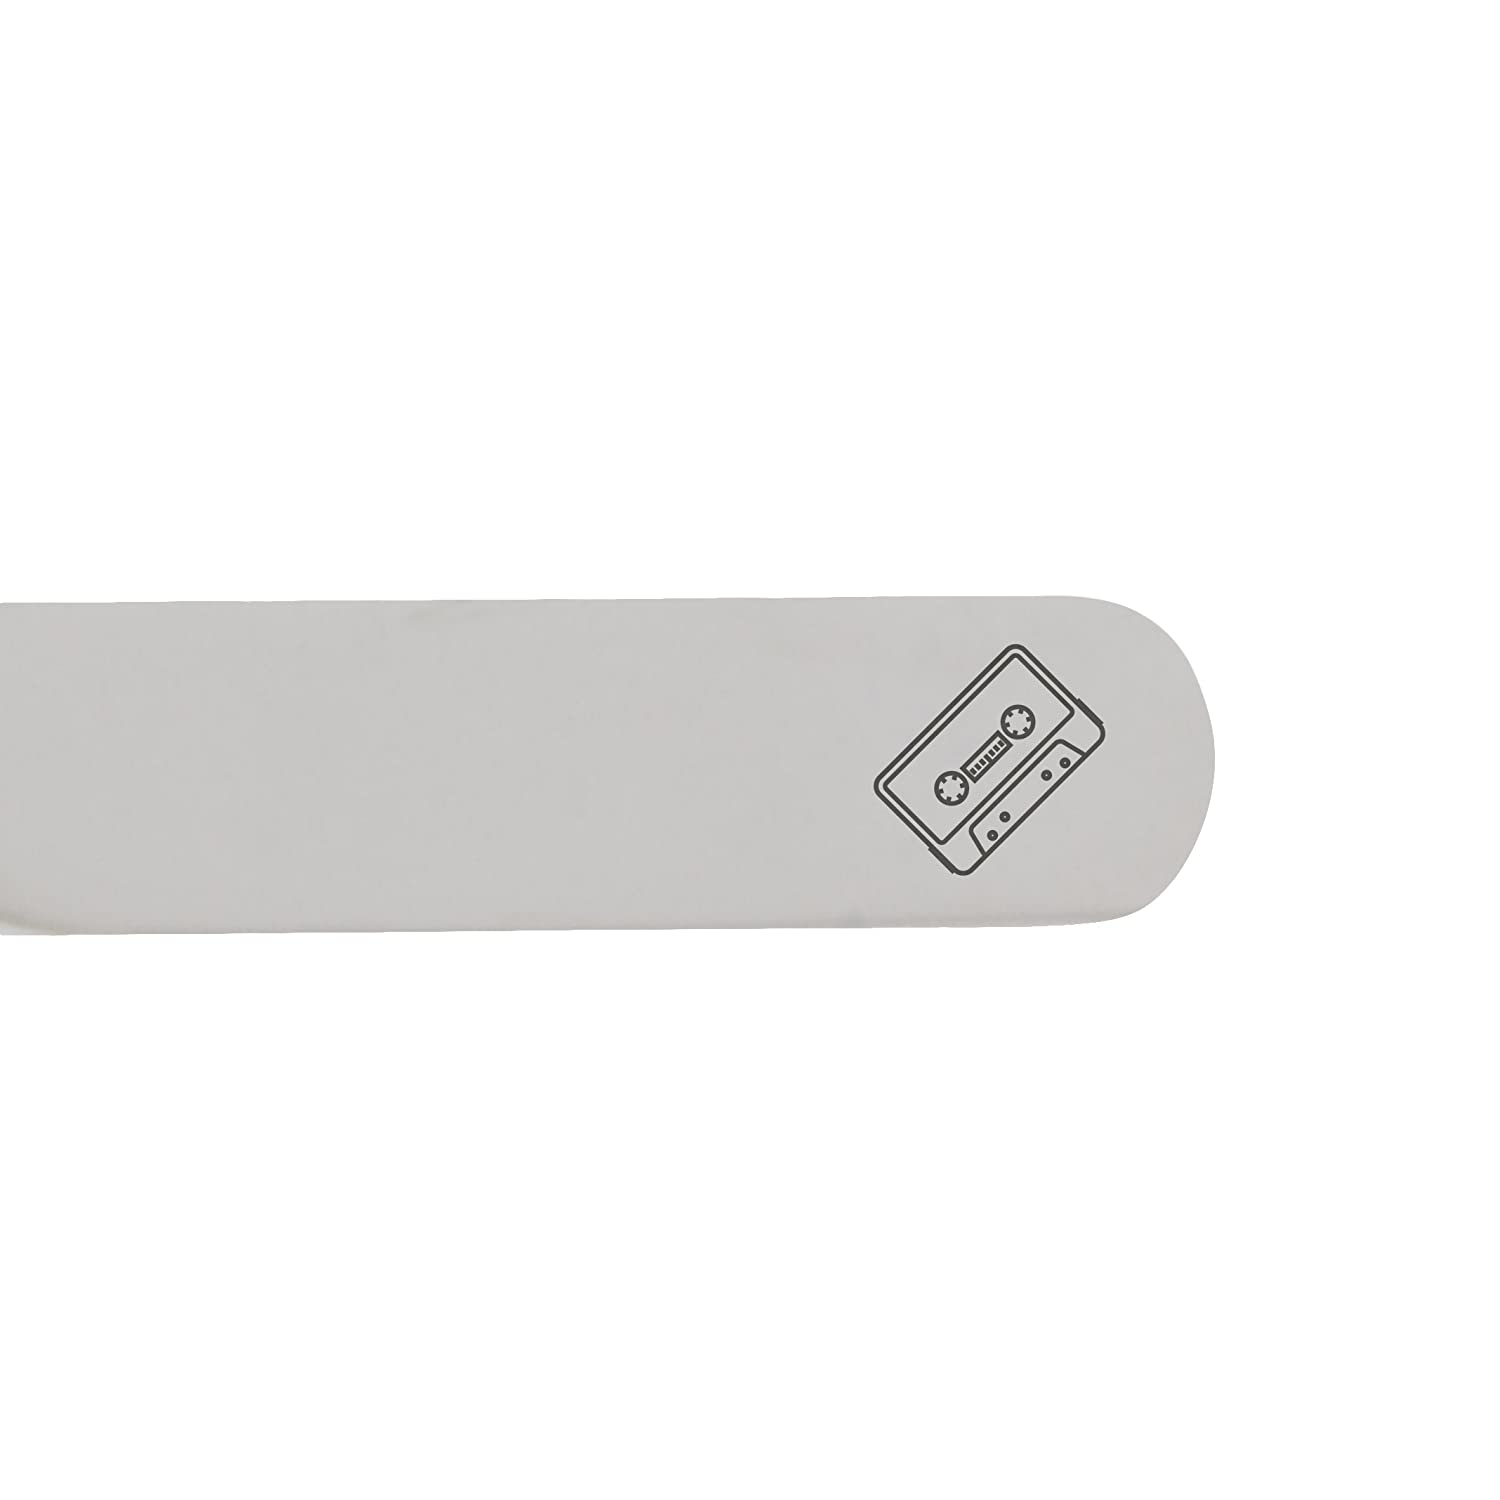 MODERN GOODS SHOP Stainless Steel Collar Stays With Laser Engraved Cassette Design Made In USA 2.5 Inch Metal Collar Stiffeners